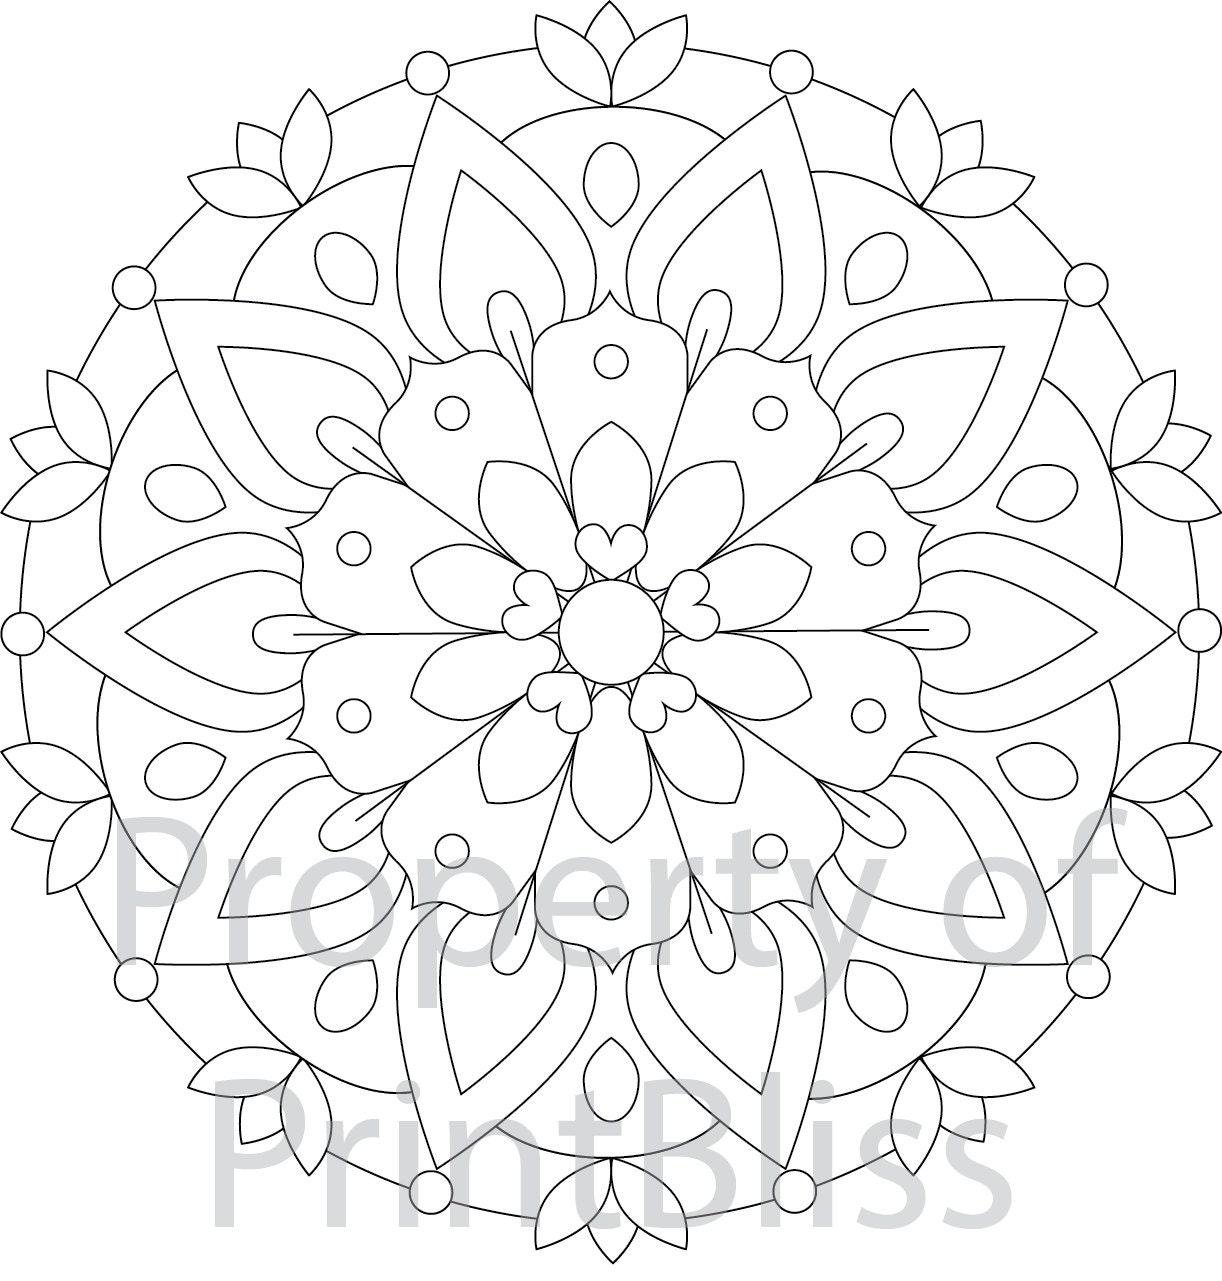 2 flower mandala printable coloring page. Black Bedroom Furniture Sets. Home Design Ideas